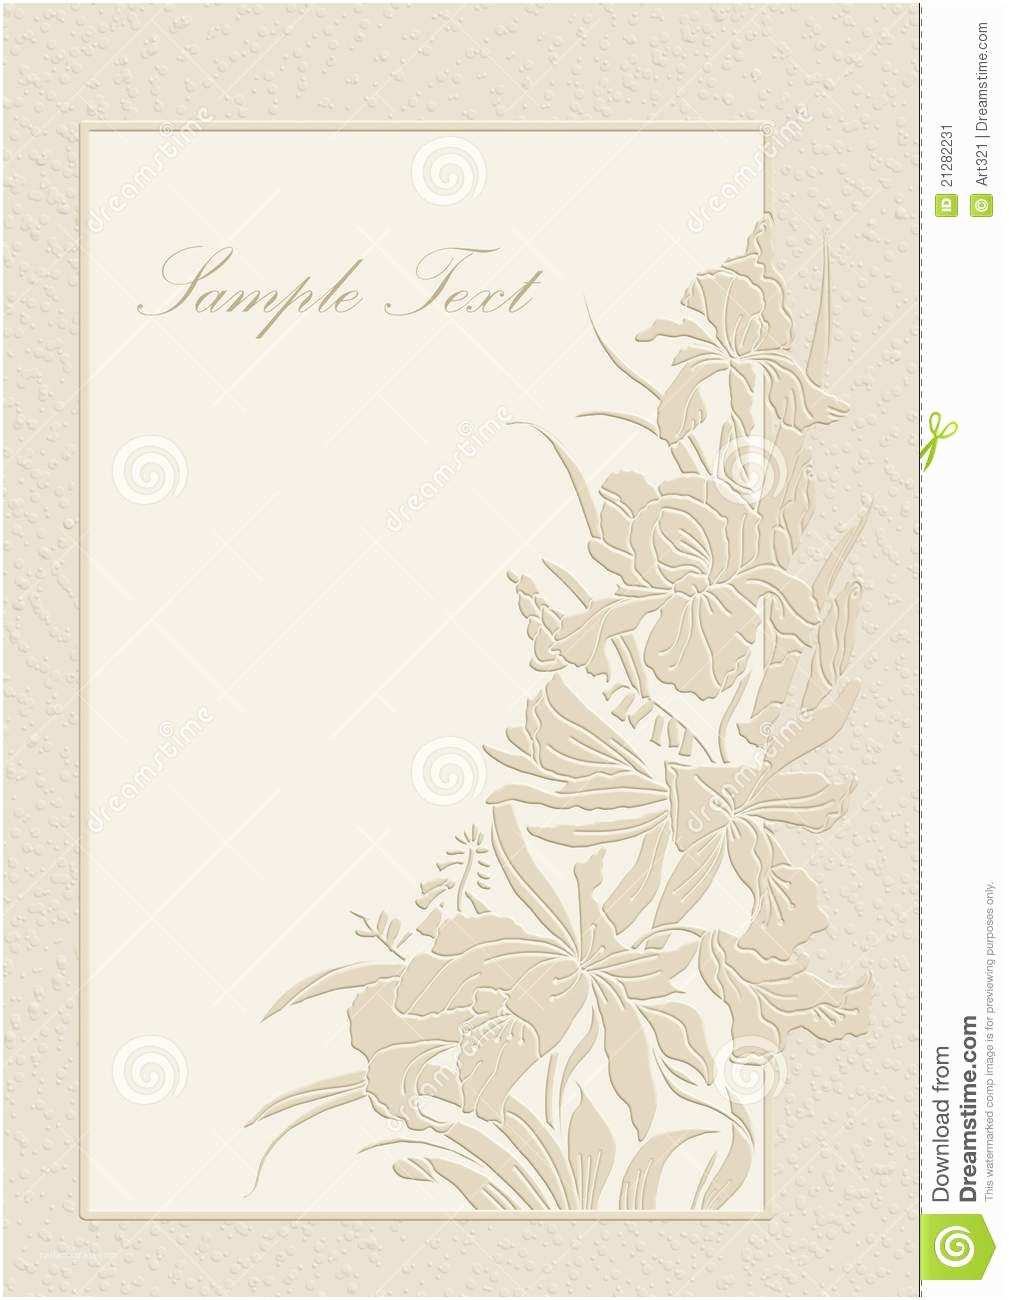 Time Frame for Wedding Invitations Wedding Invitation Frame orchids and Lilies Stock Image